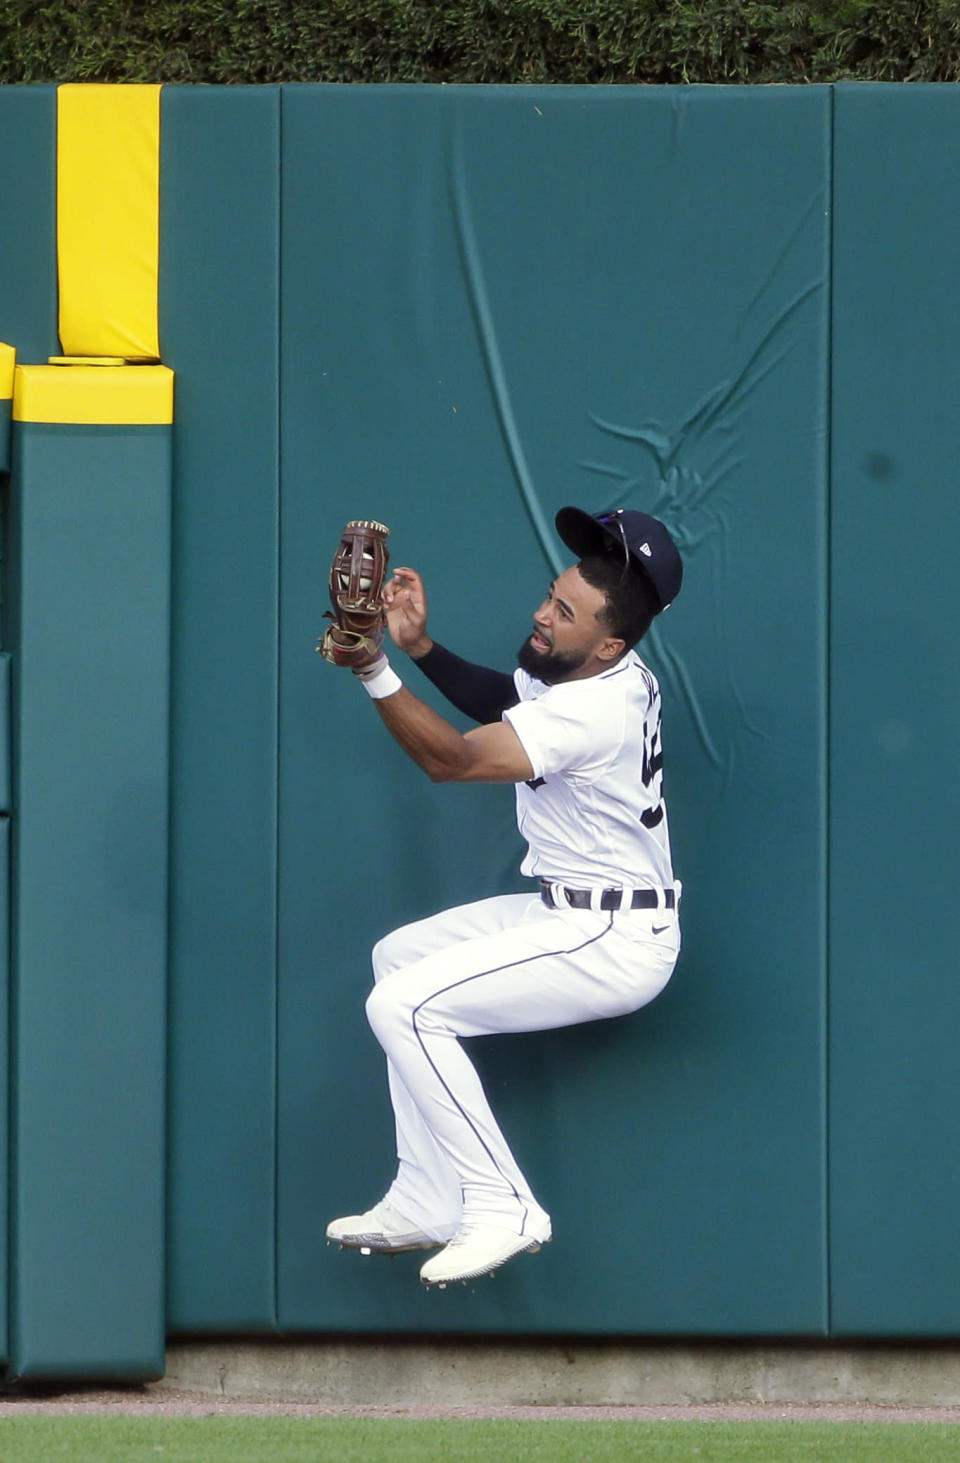 Detroit Tigers center fielder Derek Hill falls back to the ground after making a leaping catch of a fly ball hit by Seattle Mariners' Kyle Seager during the first inning of a baseball game Wednesday, June 9, 2021, in Detroit. Hill left the game with an injury. (AP Photo/Duane Burleson)